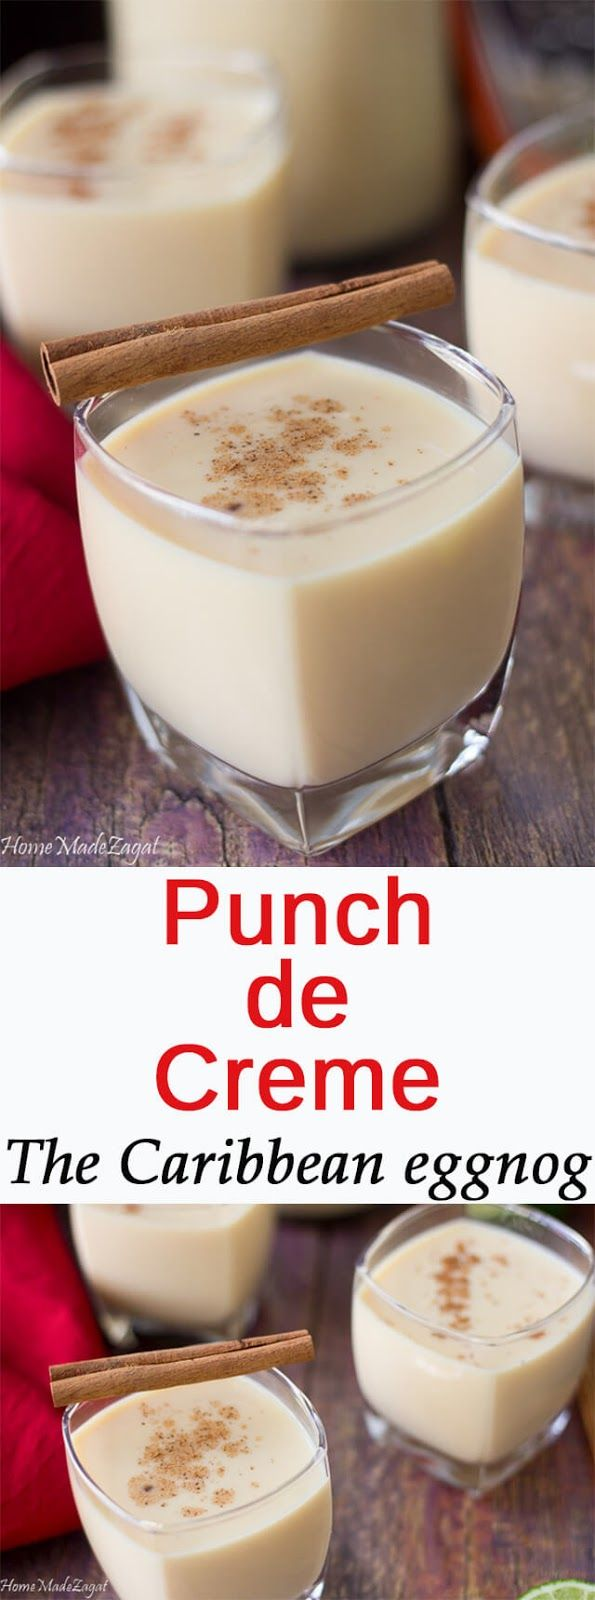 Ponche de Creme (Punch ah creme) is a popular Christmas drink that is often compared to eggnog. This Caribbean drink is a creamy alcoholic concoction infused with citrus and nutmeg.